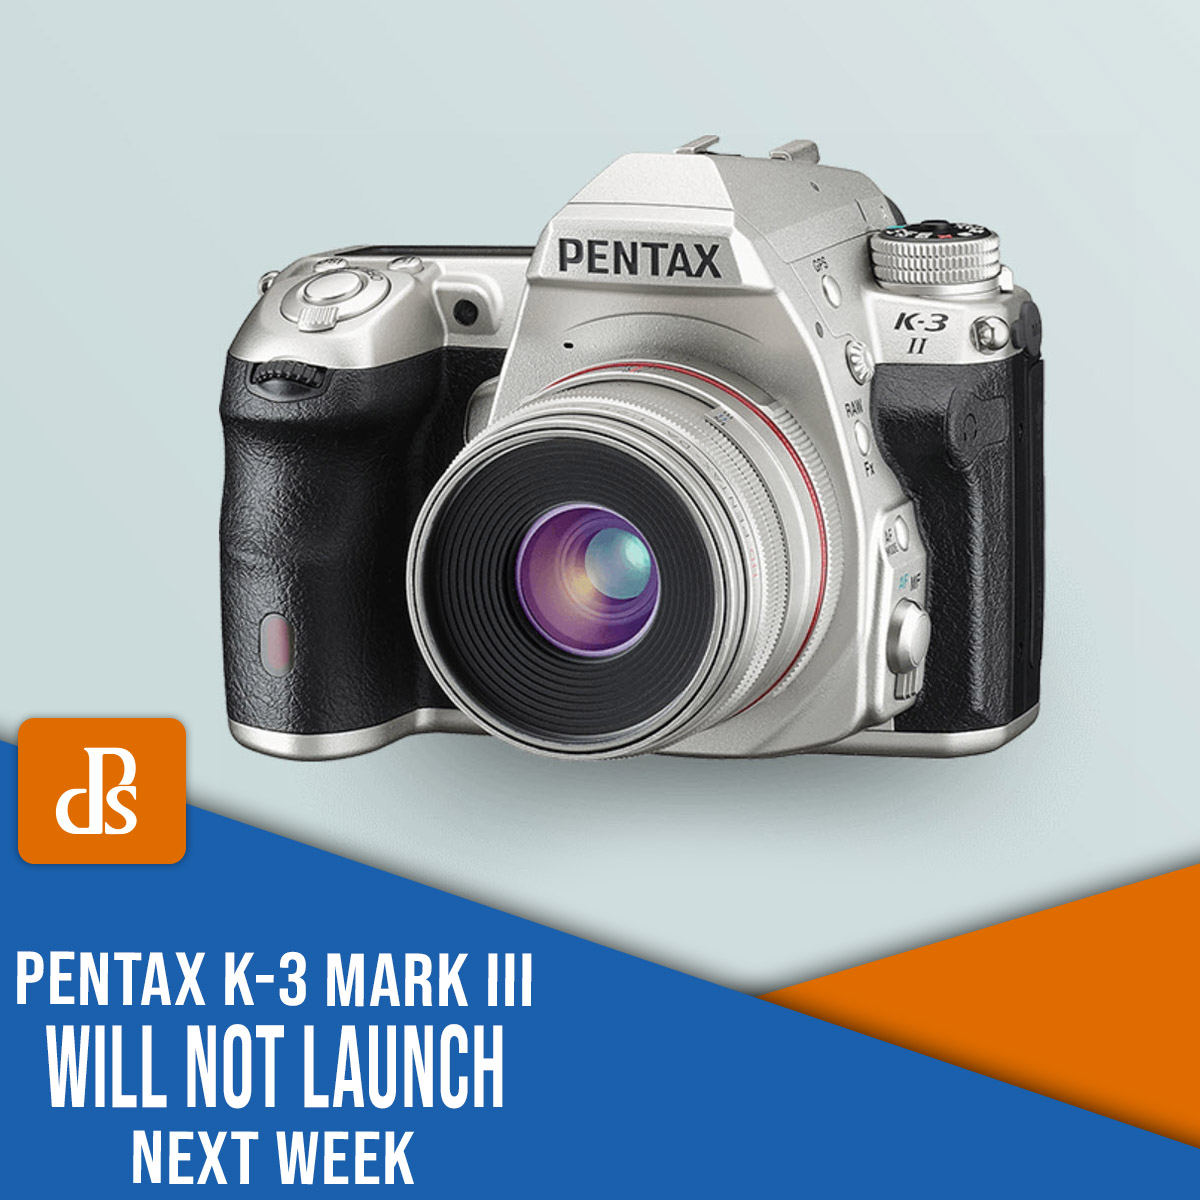 https://i2.wp.com/digital-photography-school.com/wp-content/uploads/2021/02/Pentax-K-3-Mark-III-delay-100443.jpg?resize=1200%2C1200&ssl=1